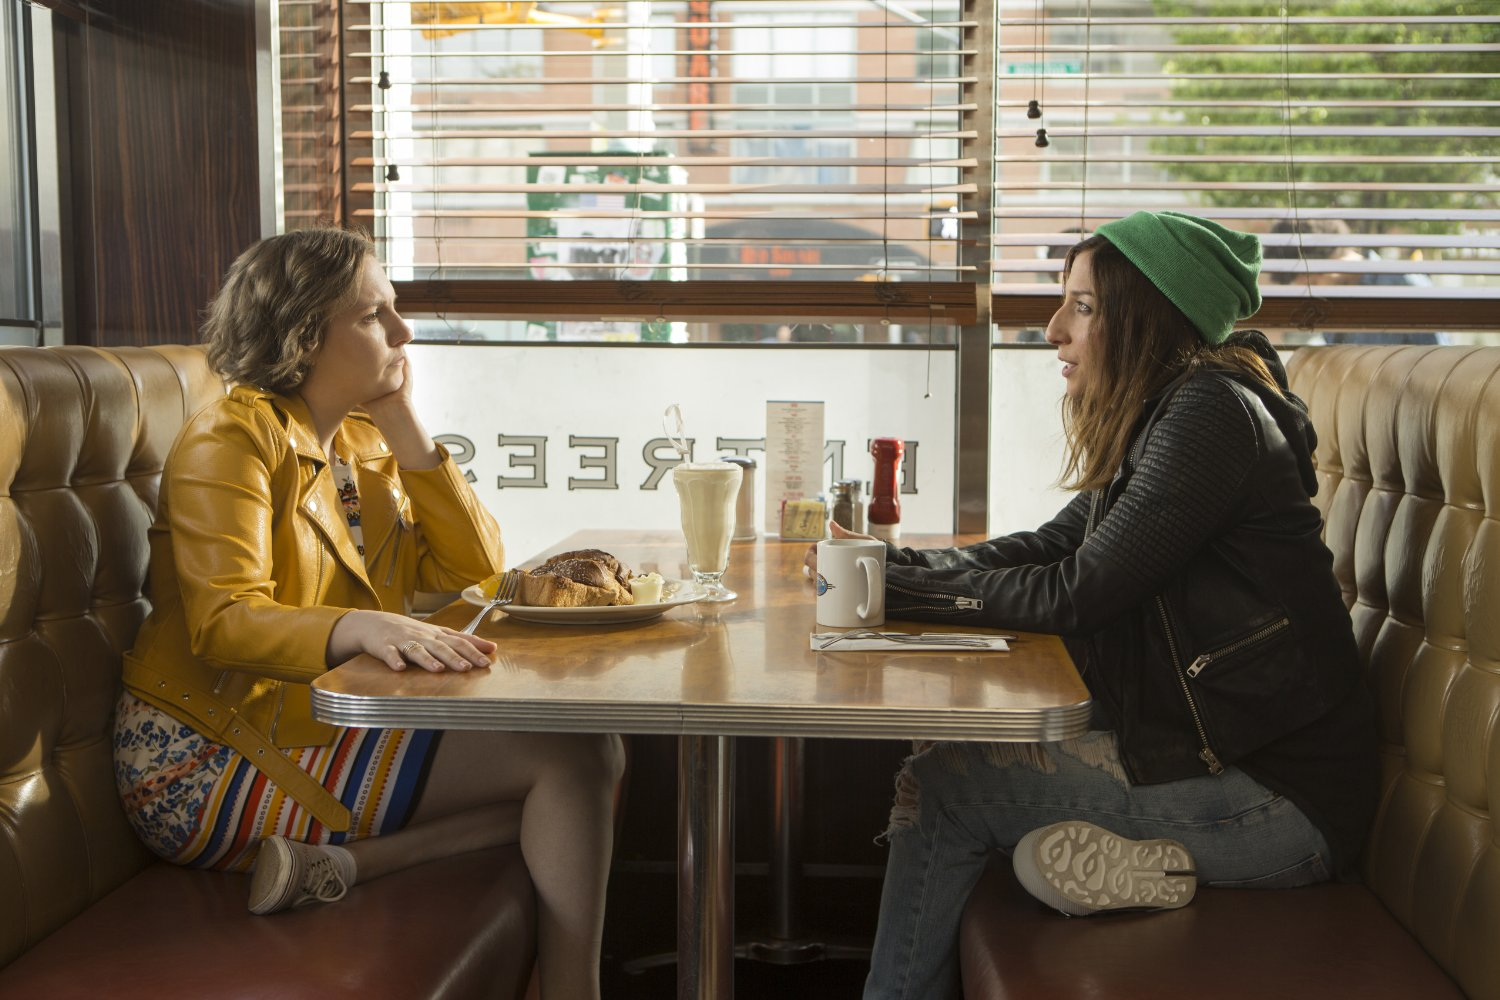 Chelsea_Peretti_and_Lena_Dunham_in_Girls_2